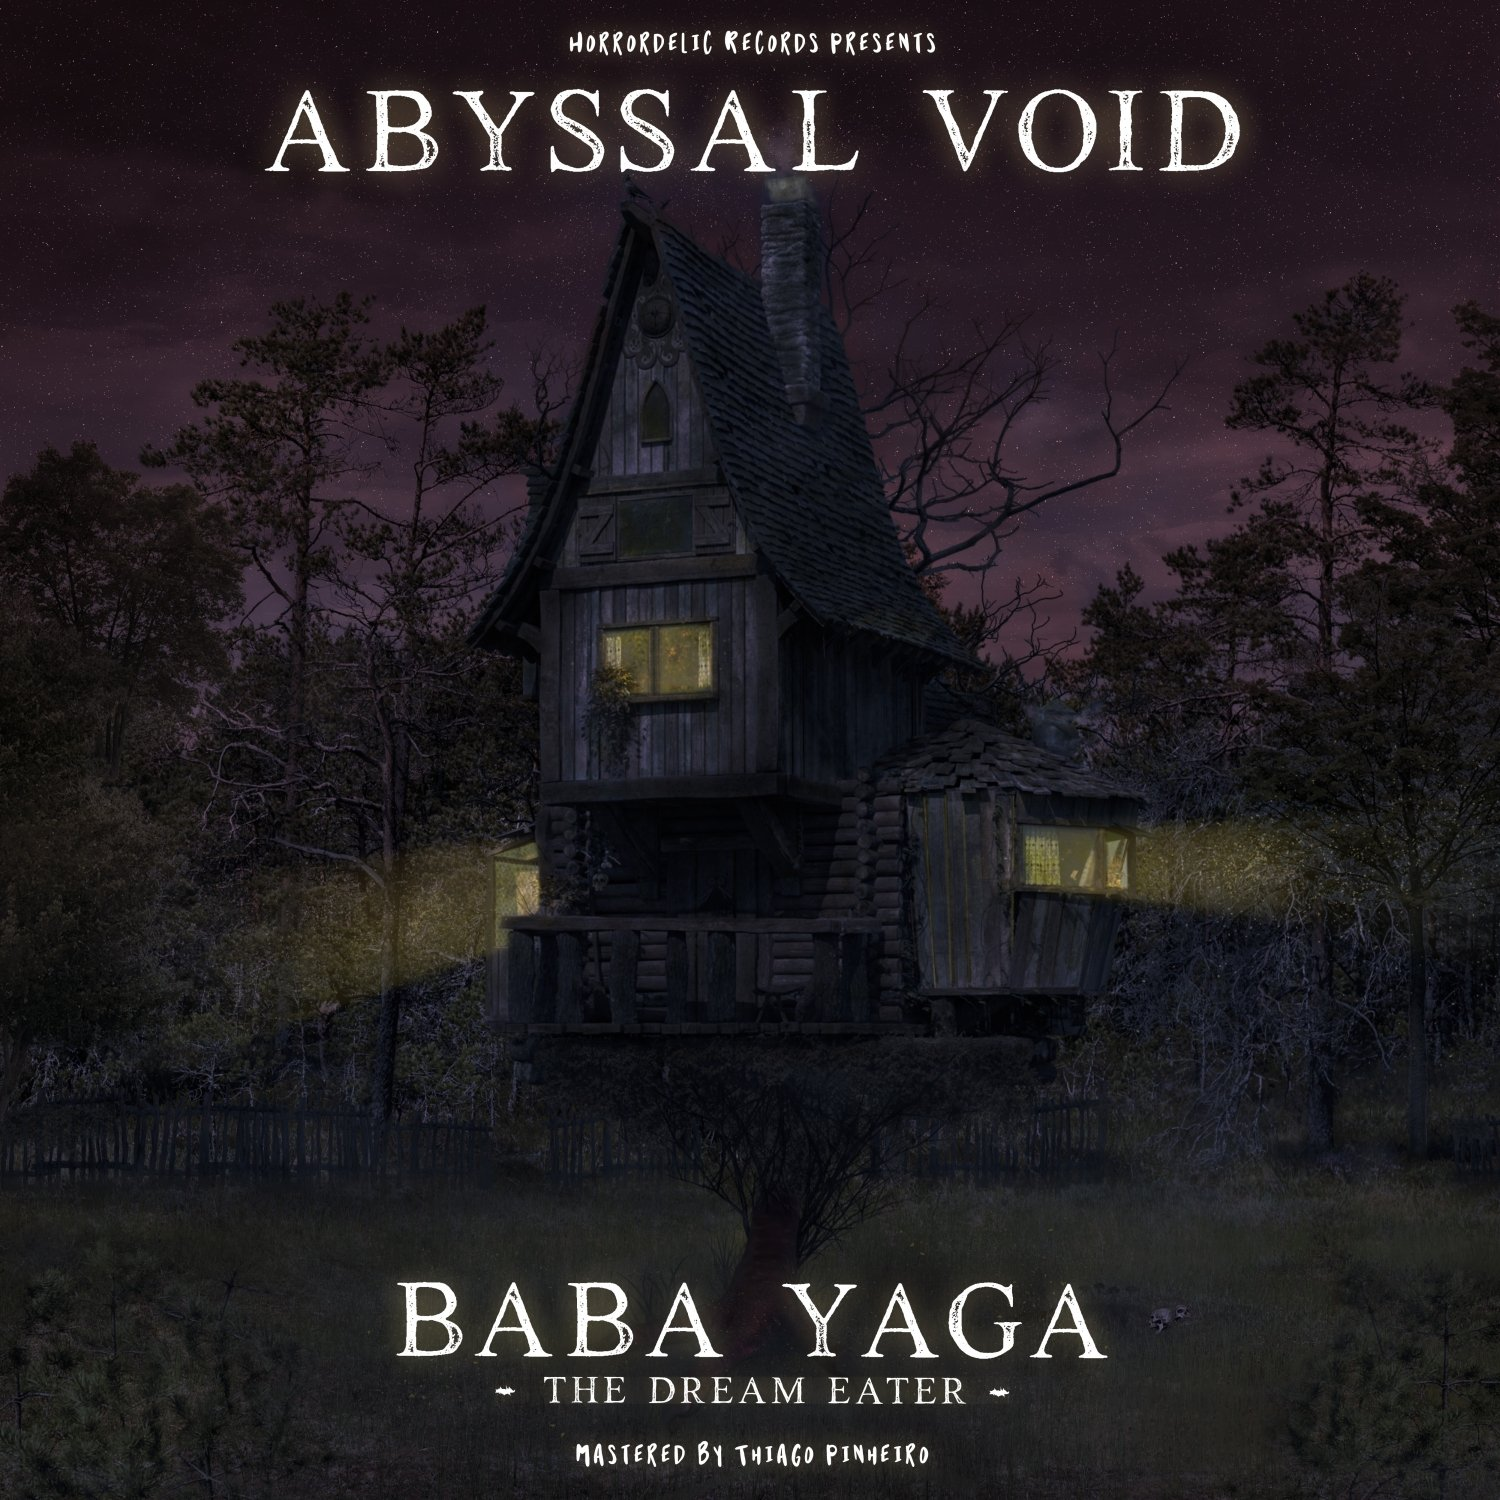 Abyssal_Void_-_Baba_Yaga_Front_Cover_Horrordelic_2020.jpg